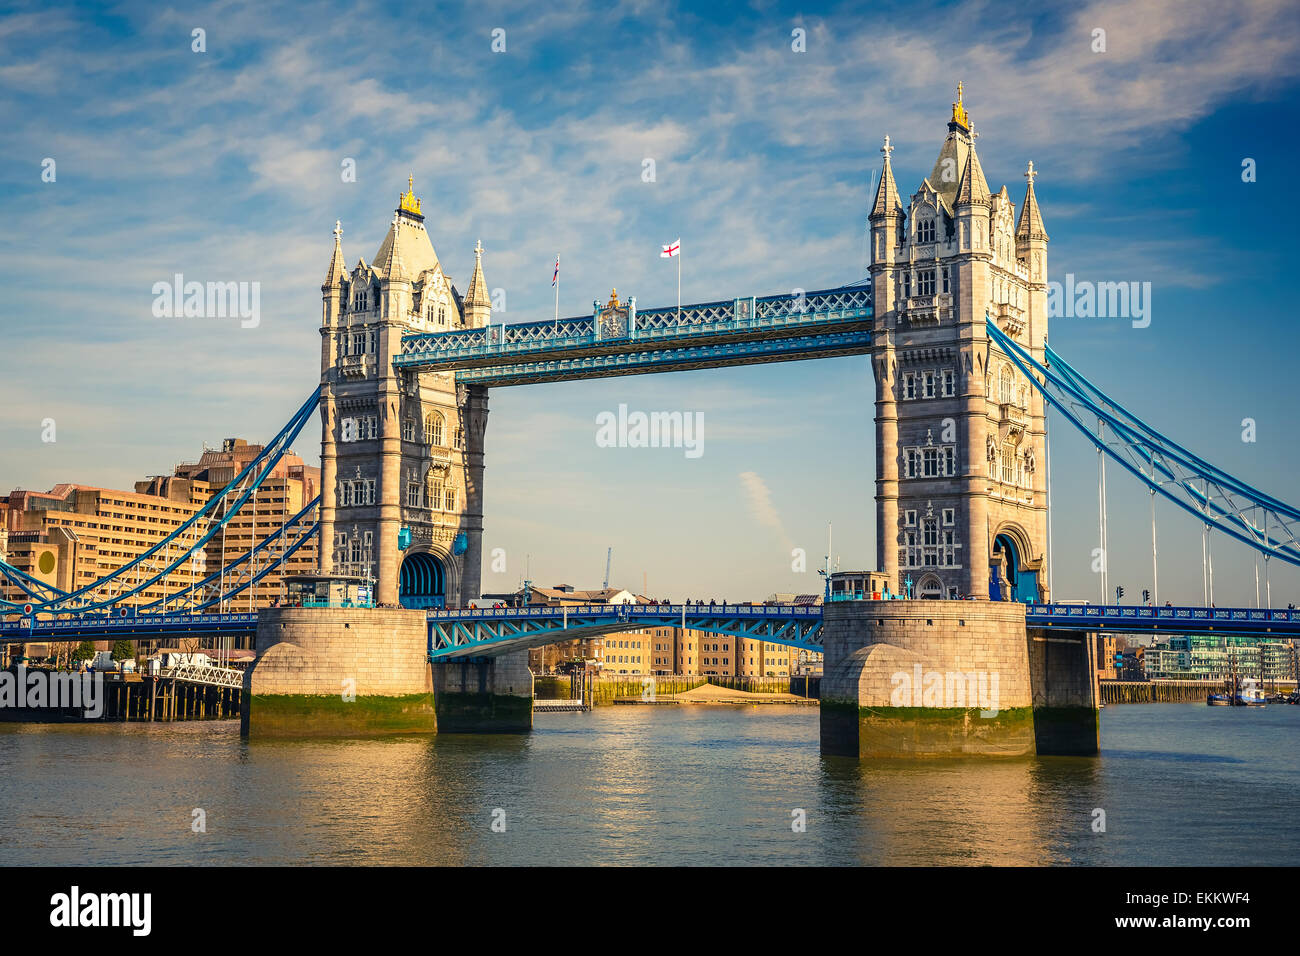 Tower bridge in London - Stock Image